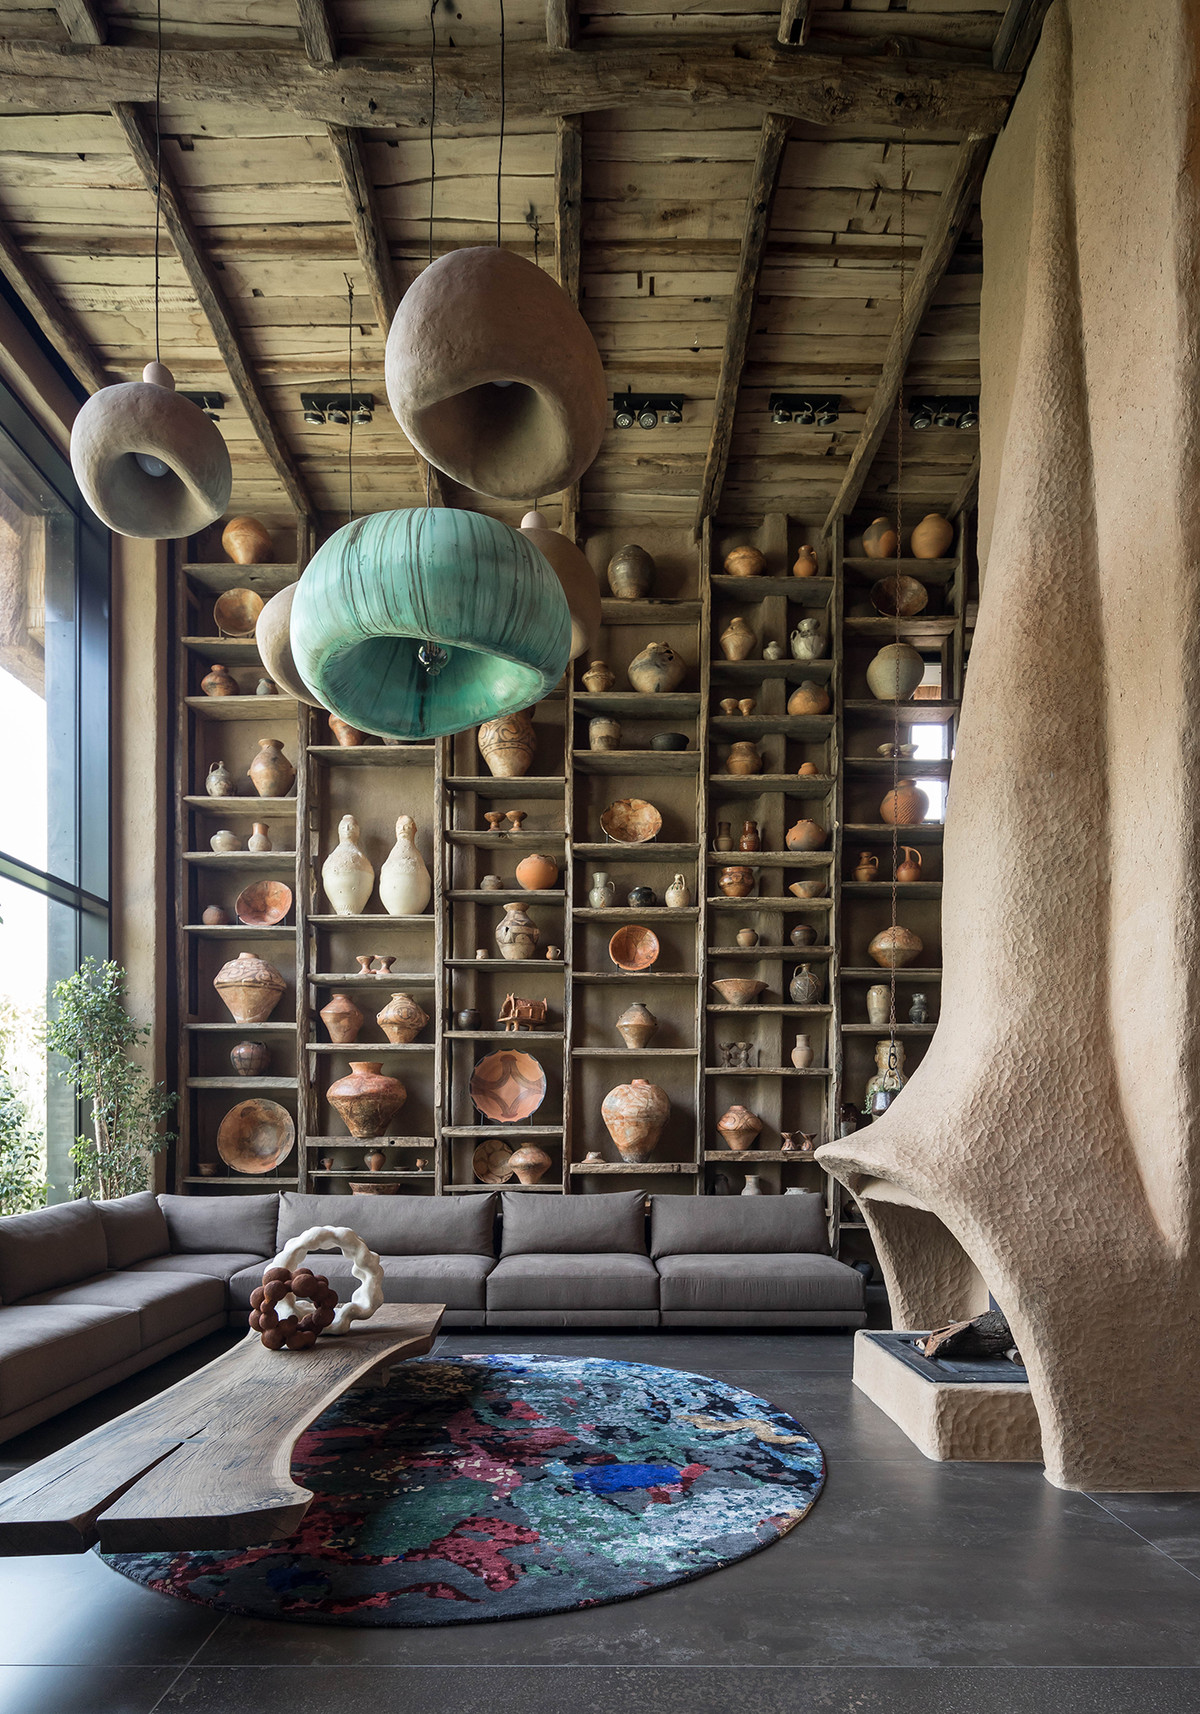 A double-height living room with an rounded fireplace leading up to the ceiling and a full wall of ceramics.